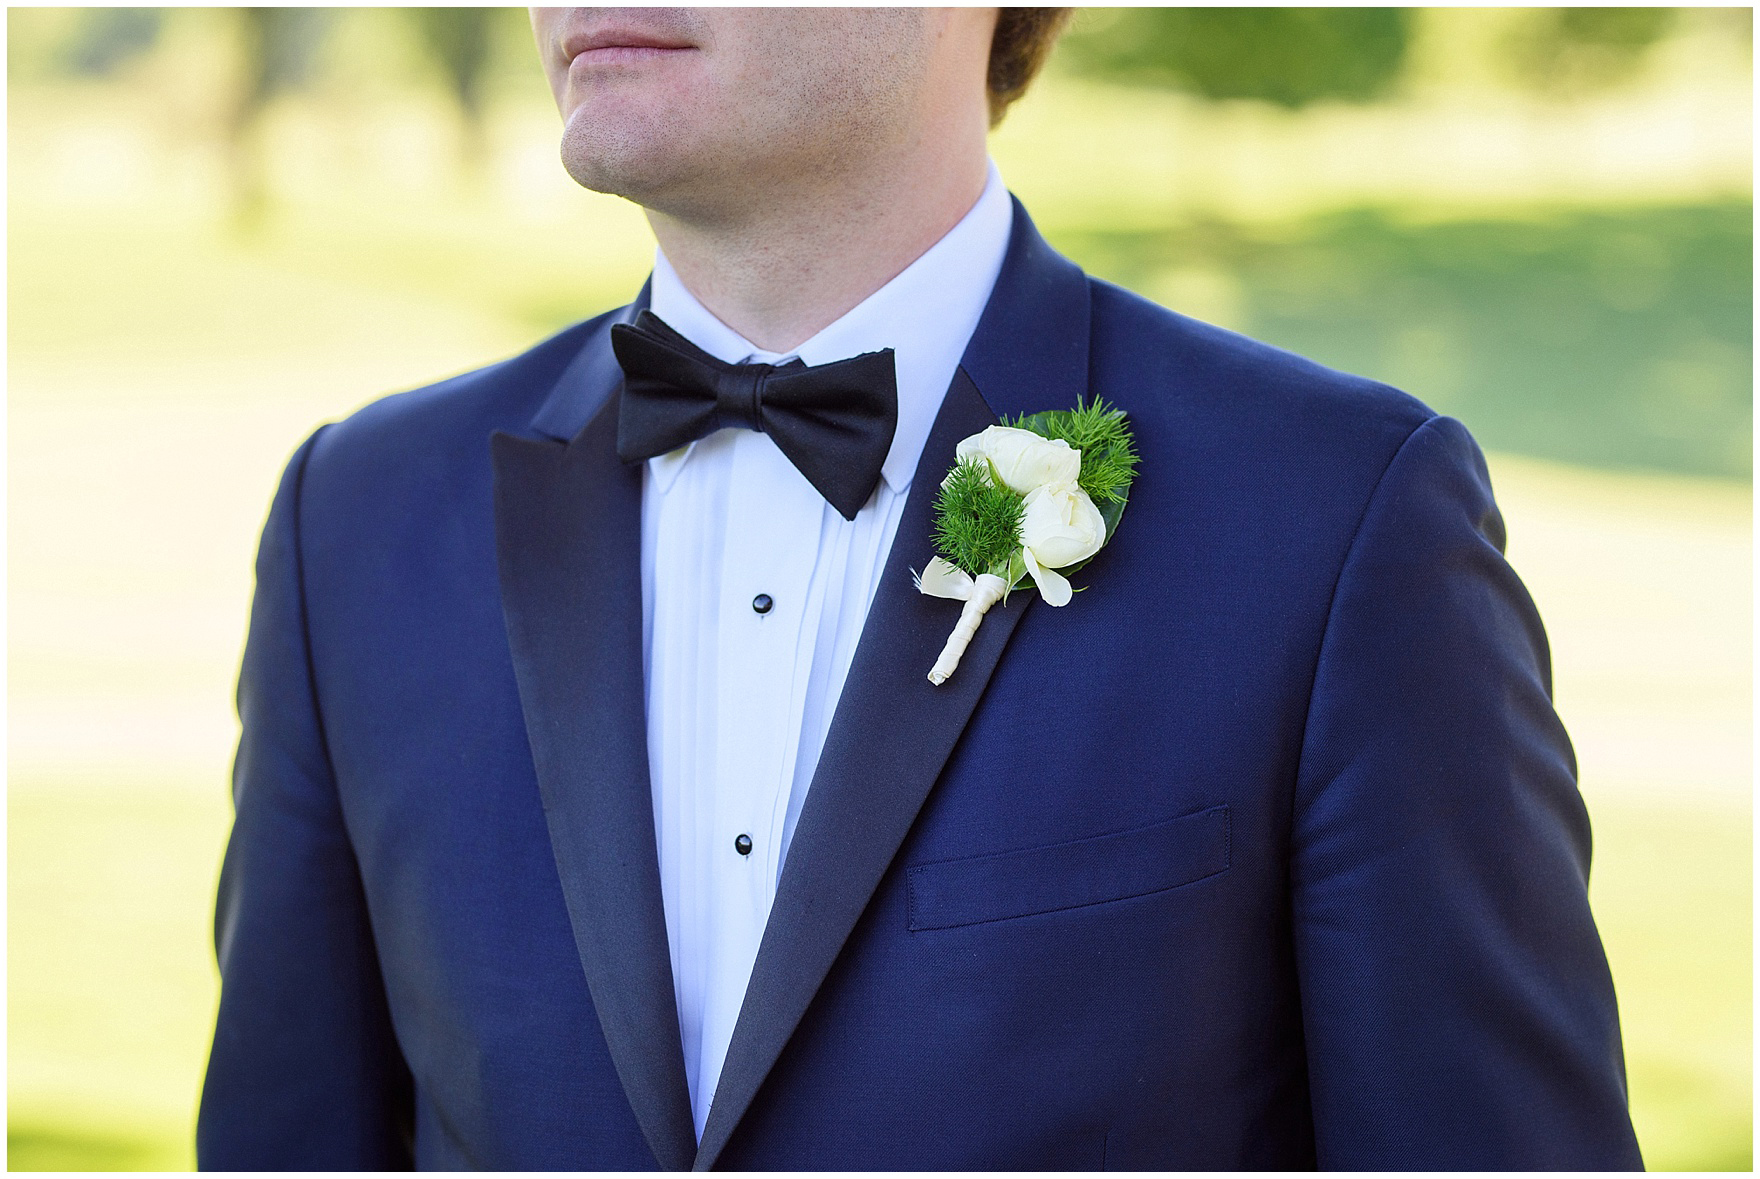 Photograph of a groom in a navy tuxedo with a boutonniere by Flowers for Dreams during a Butterfield Country Club wedding.